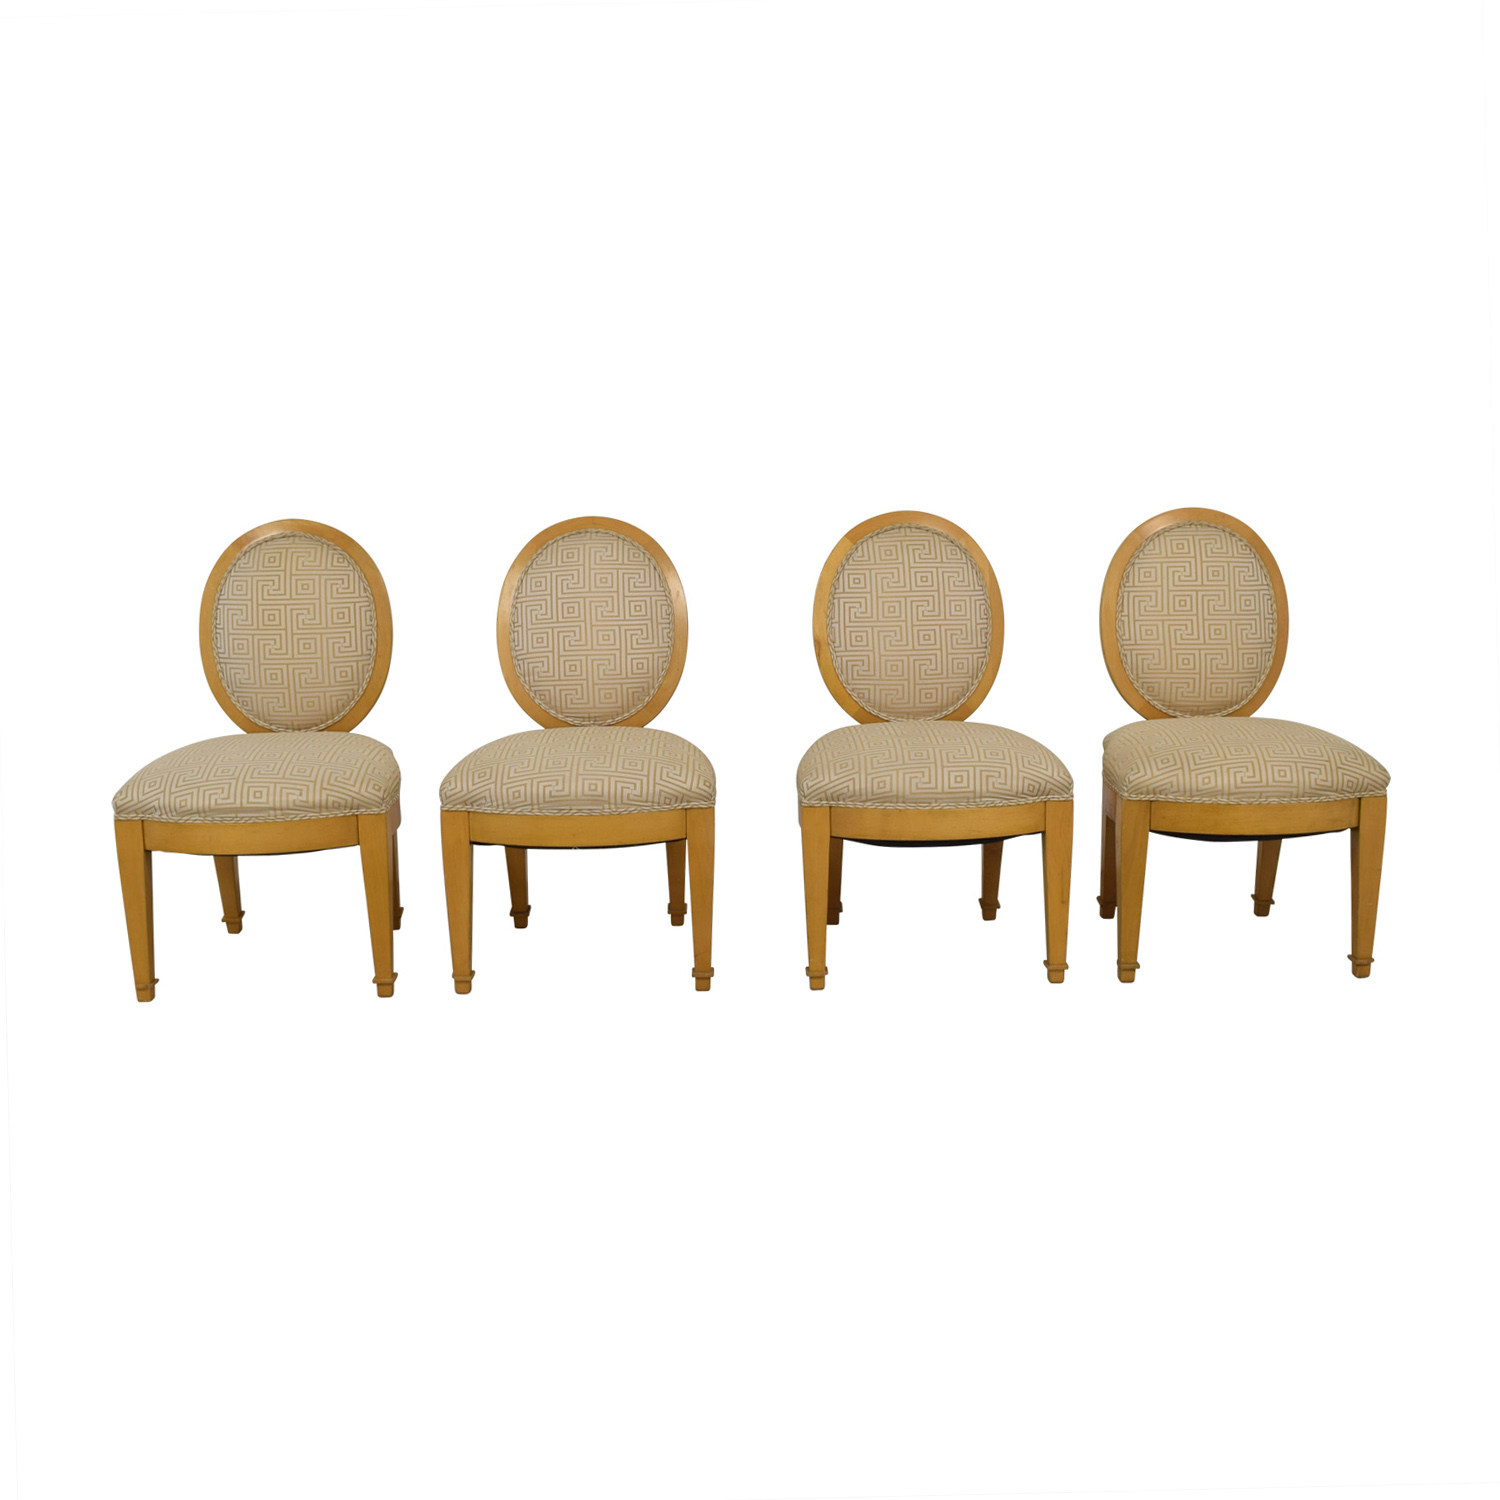 Furniture Masters Furniture Masters Tan and Beige Upholstered Dining Chairs nj